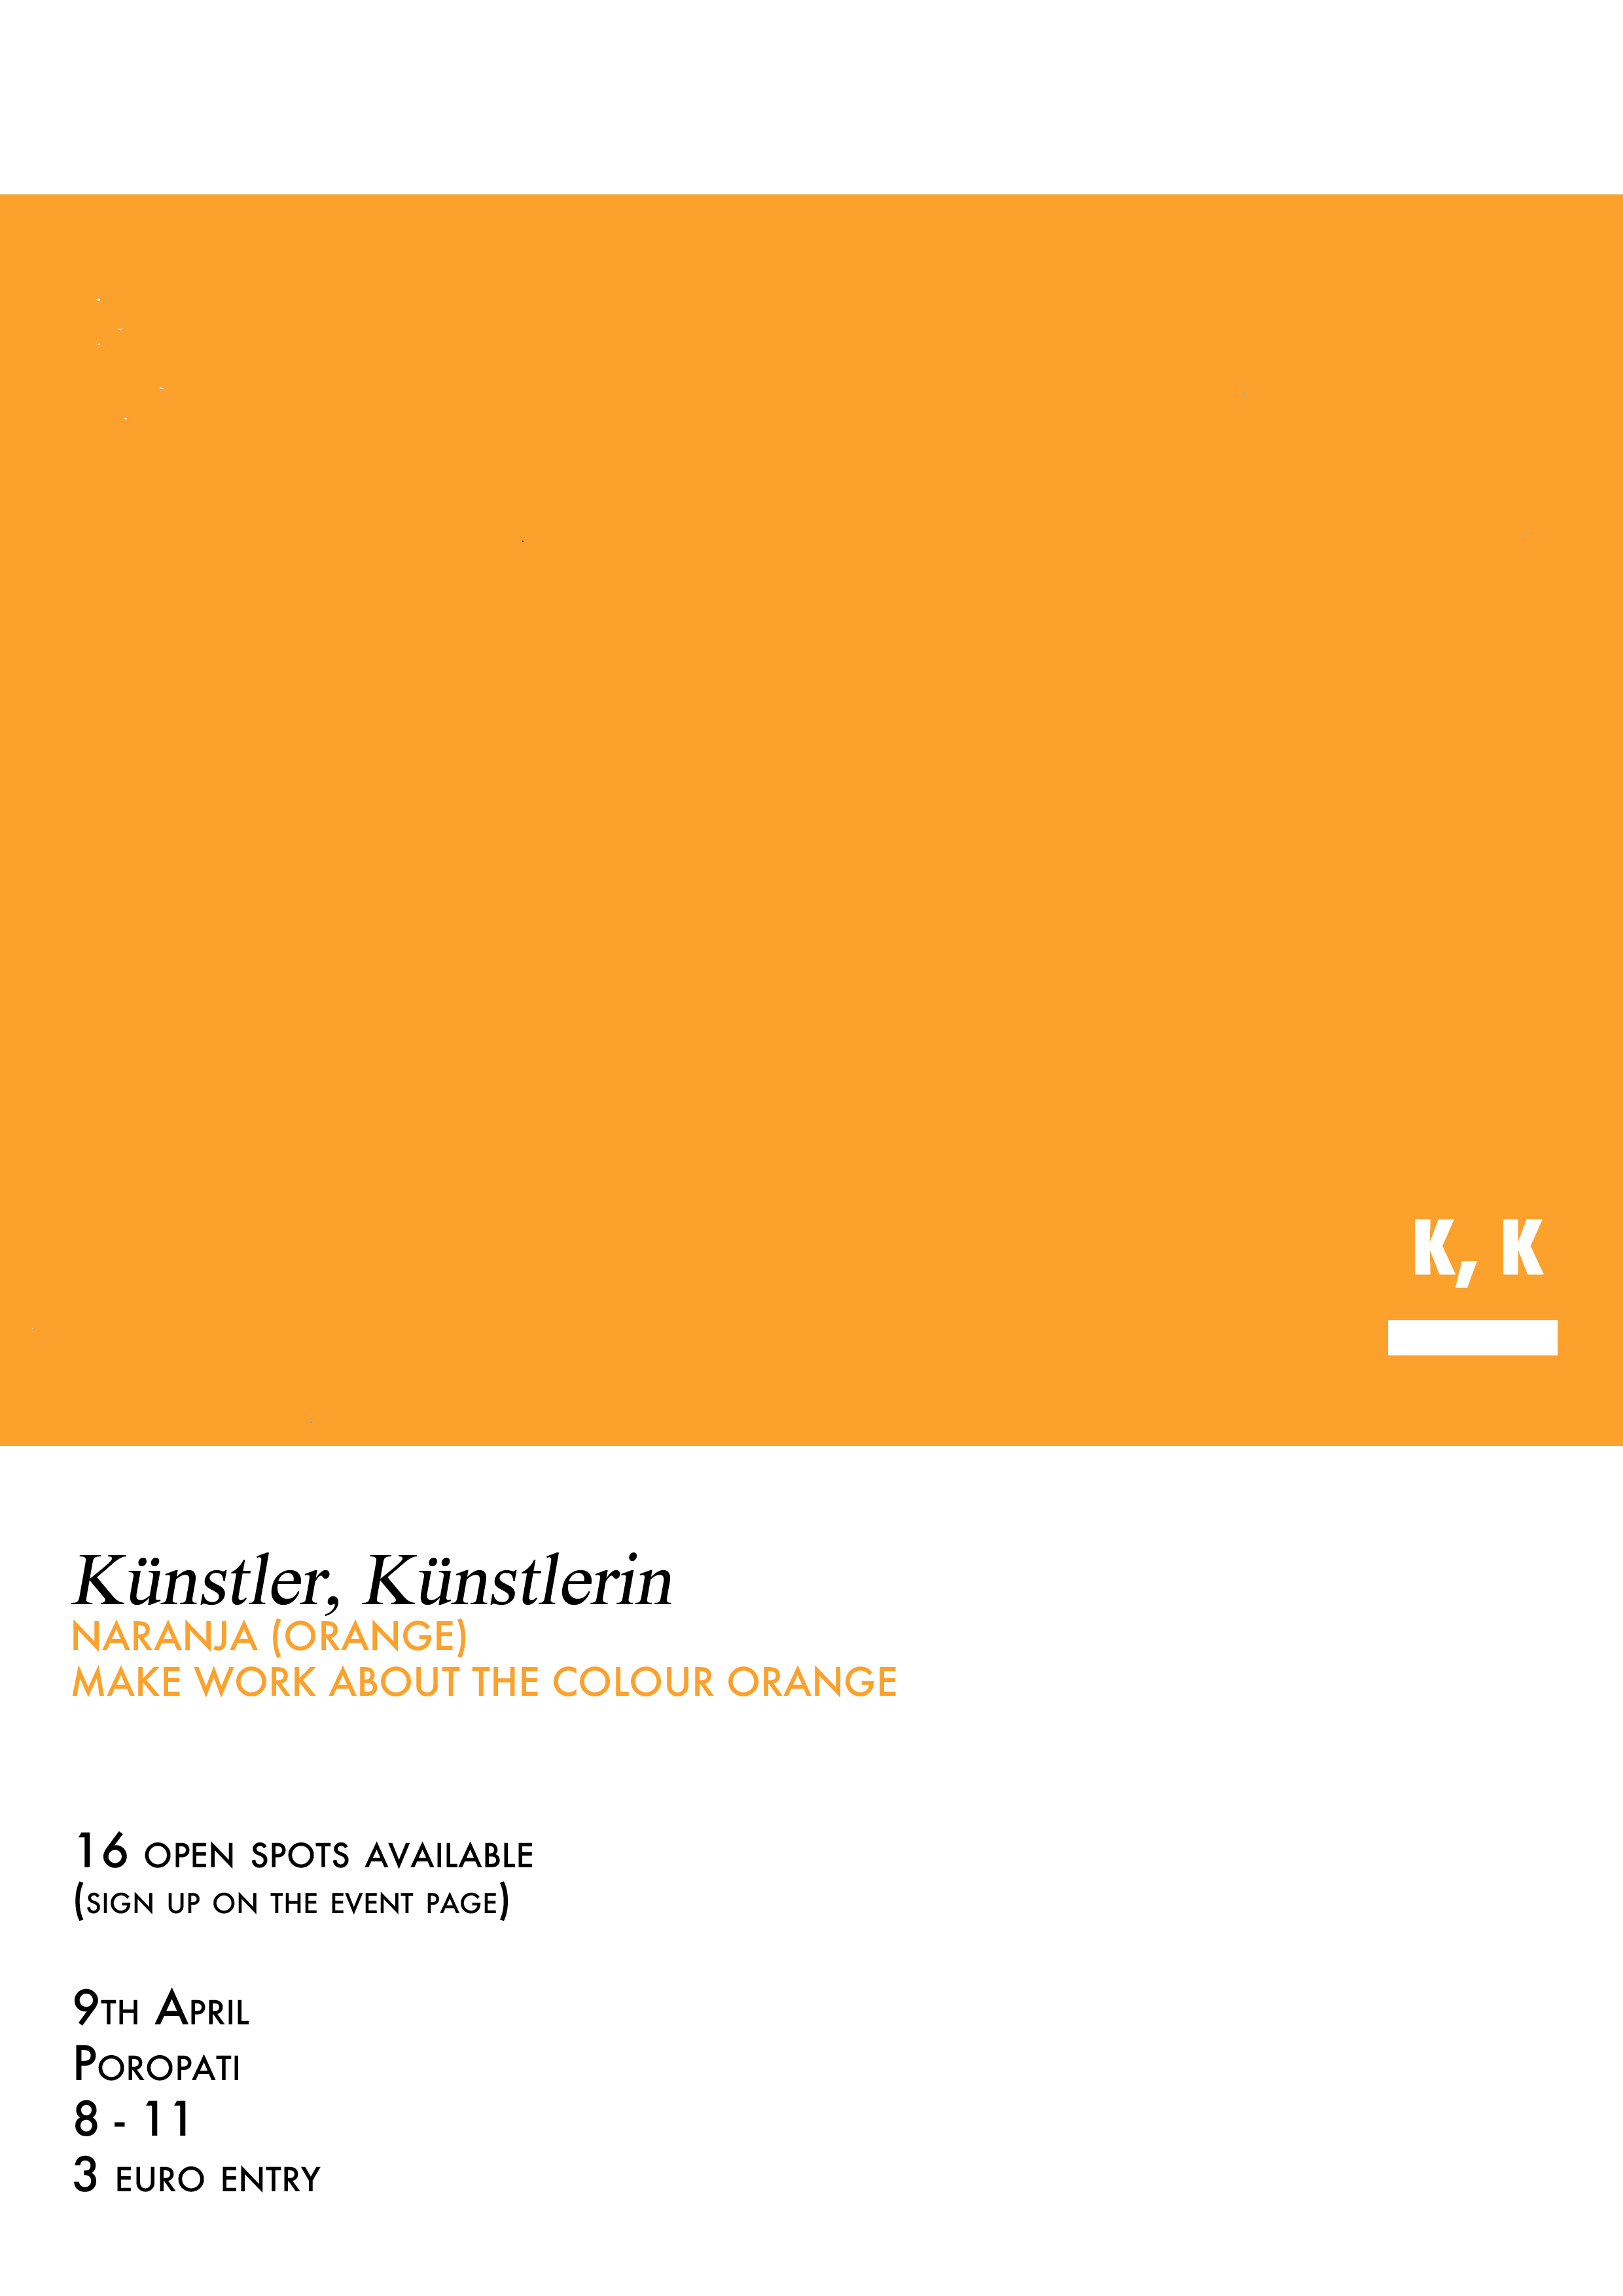 Künstler, Künstlerin, Naranja (Orange) make work about the colour Orange.jpg